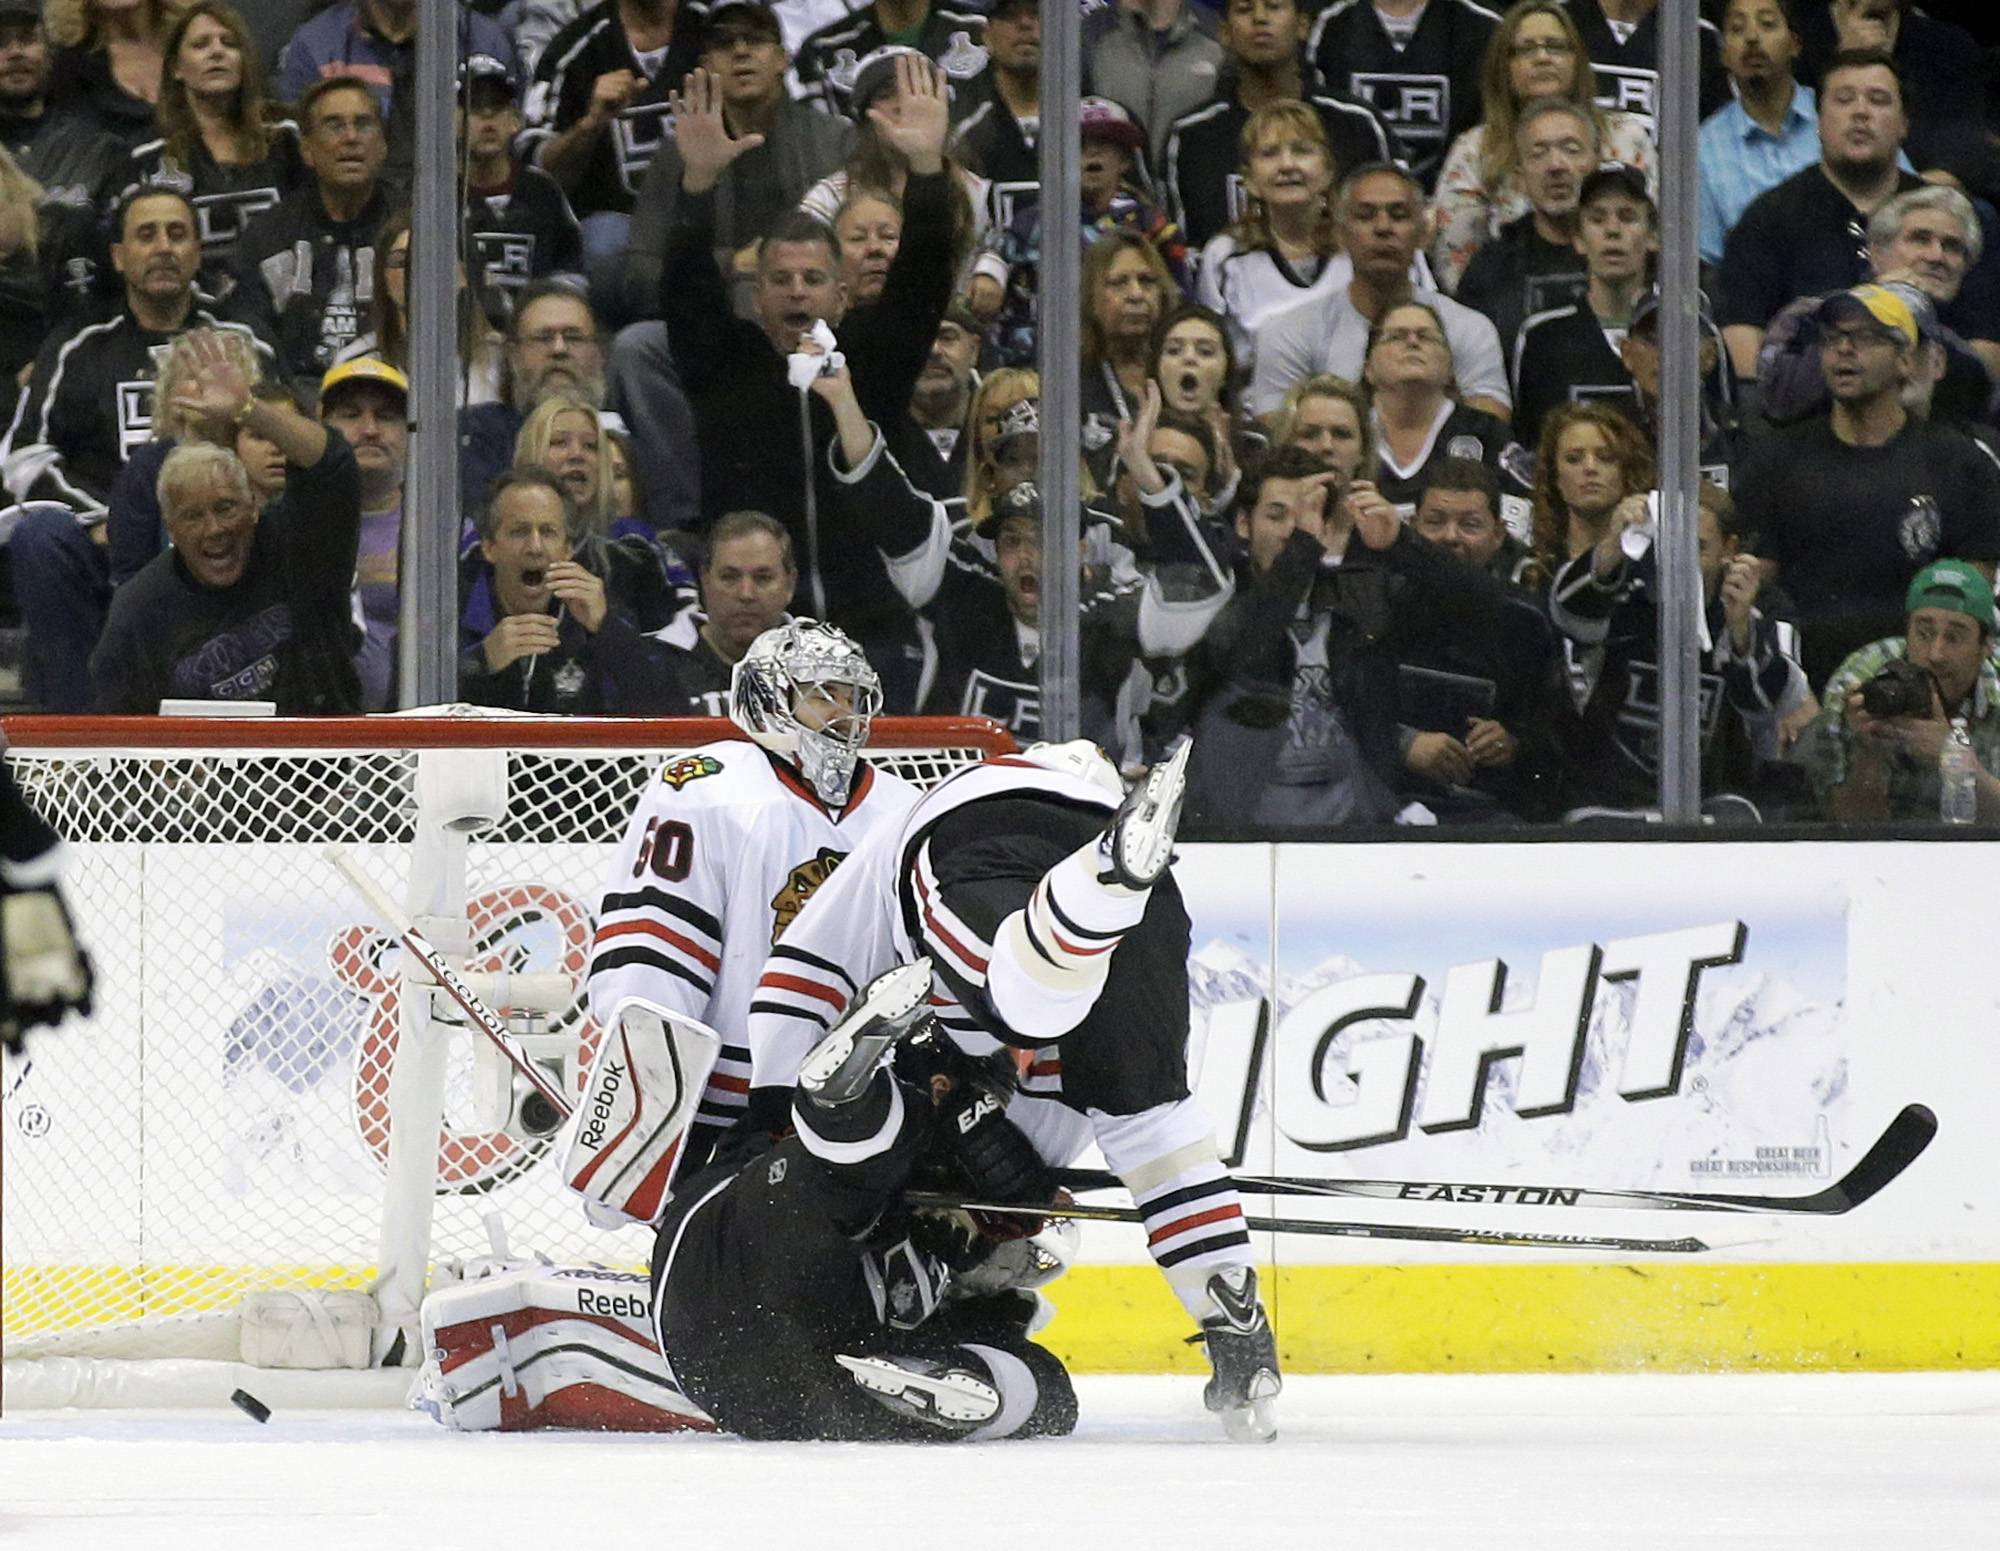 Los Angeles Kings right wing Marian Gaborik, bottom, scores past Chicago Blackhawks goalie Corey Crawford left, and defenseman Brent Seabrook, top, during the first period of Game 4 of the Western Conference finals of the NHL hockey Stanley Cup playoffs in Los Angeles, Monday, May 26, 2014.